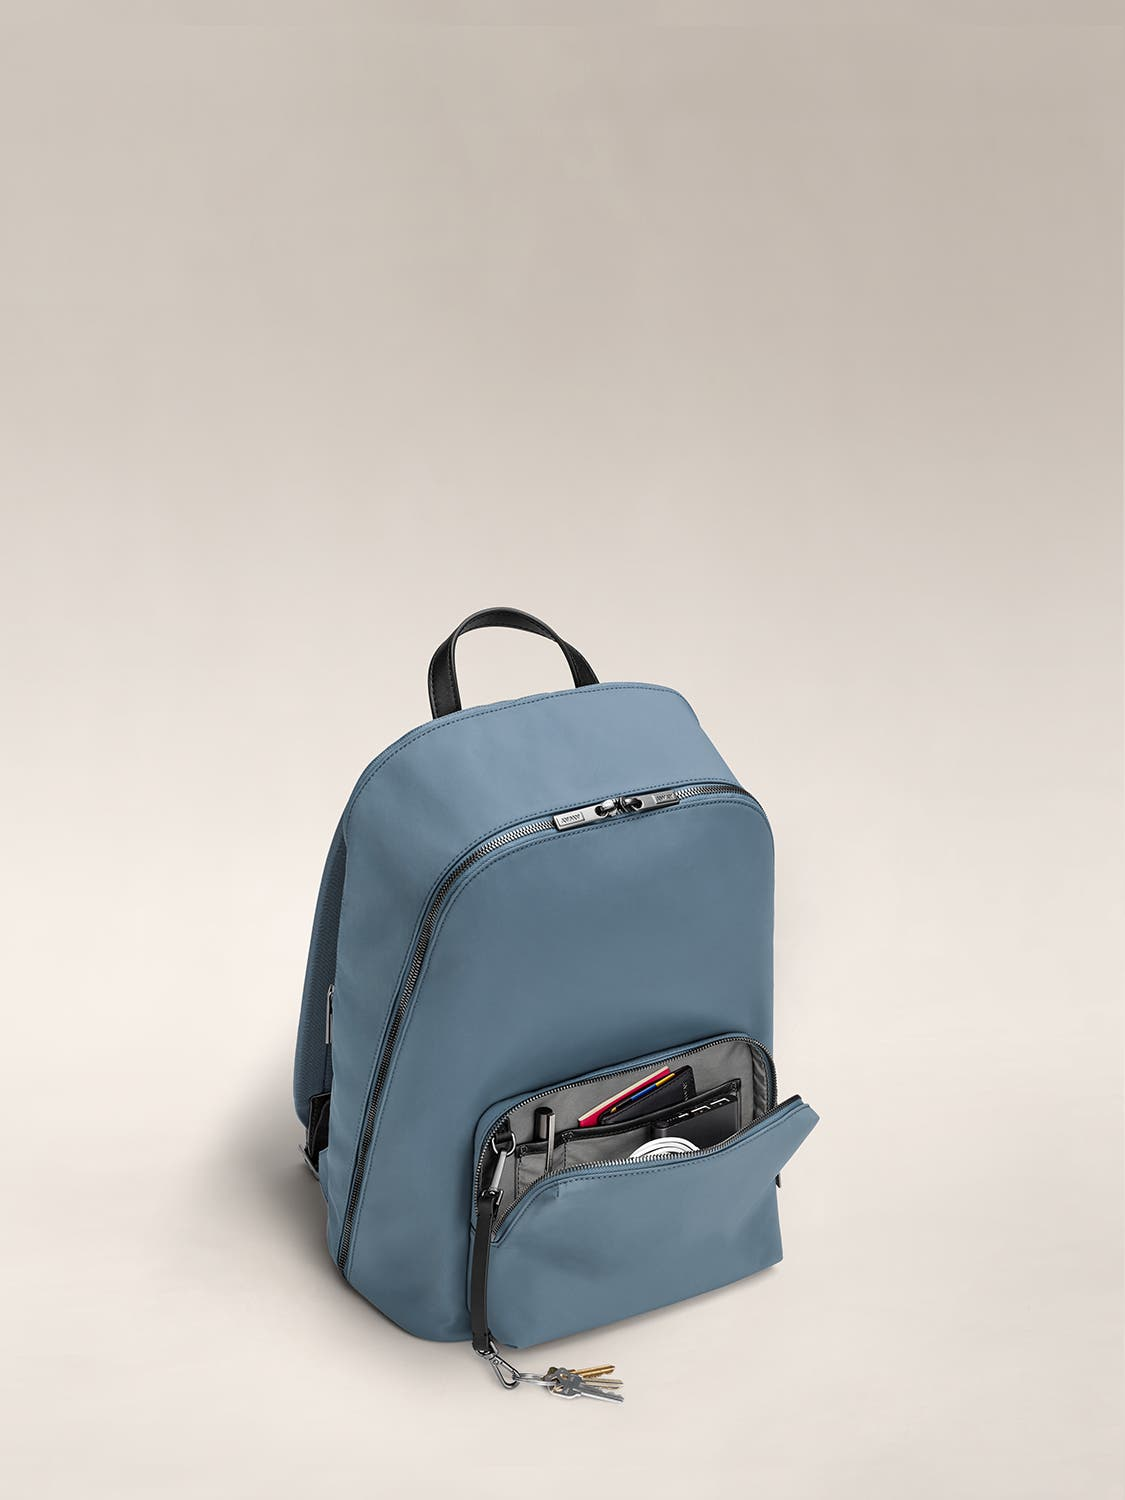 Small front pocket of a coast blue backpack unzipped and showing various accessories and documents organized inside.